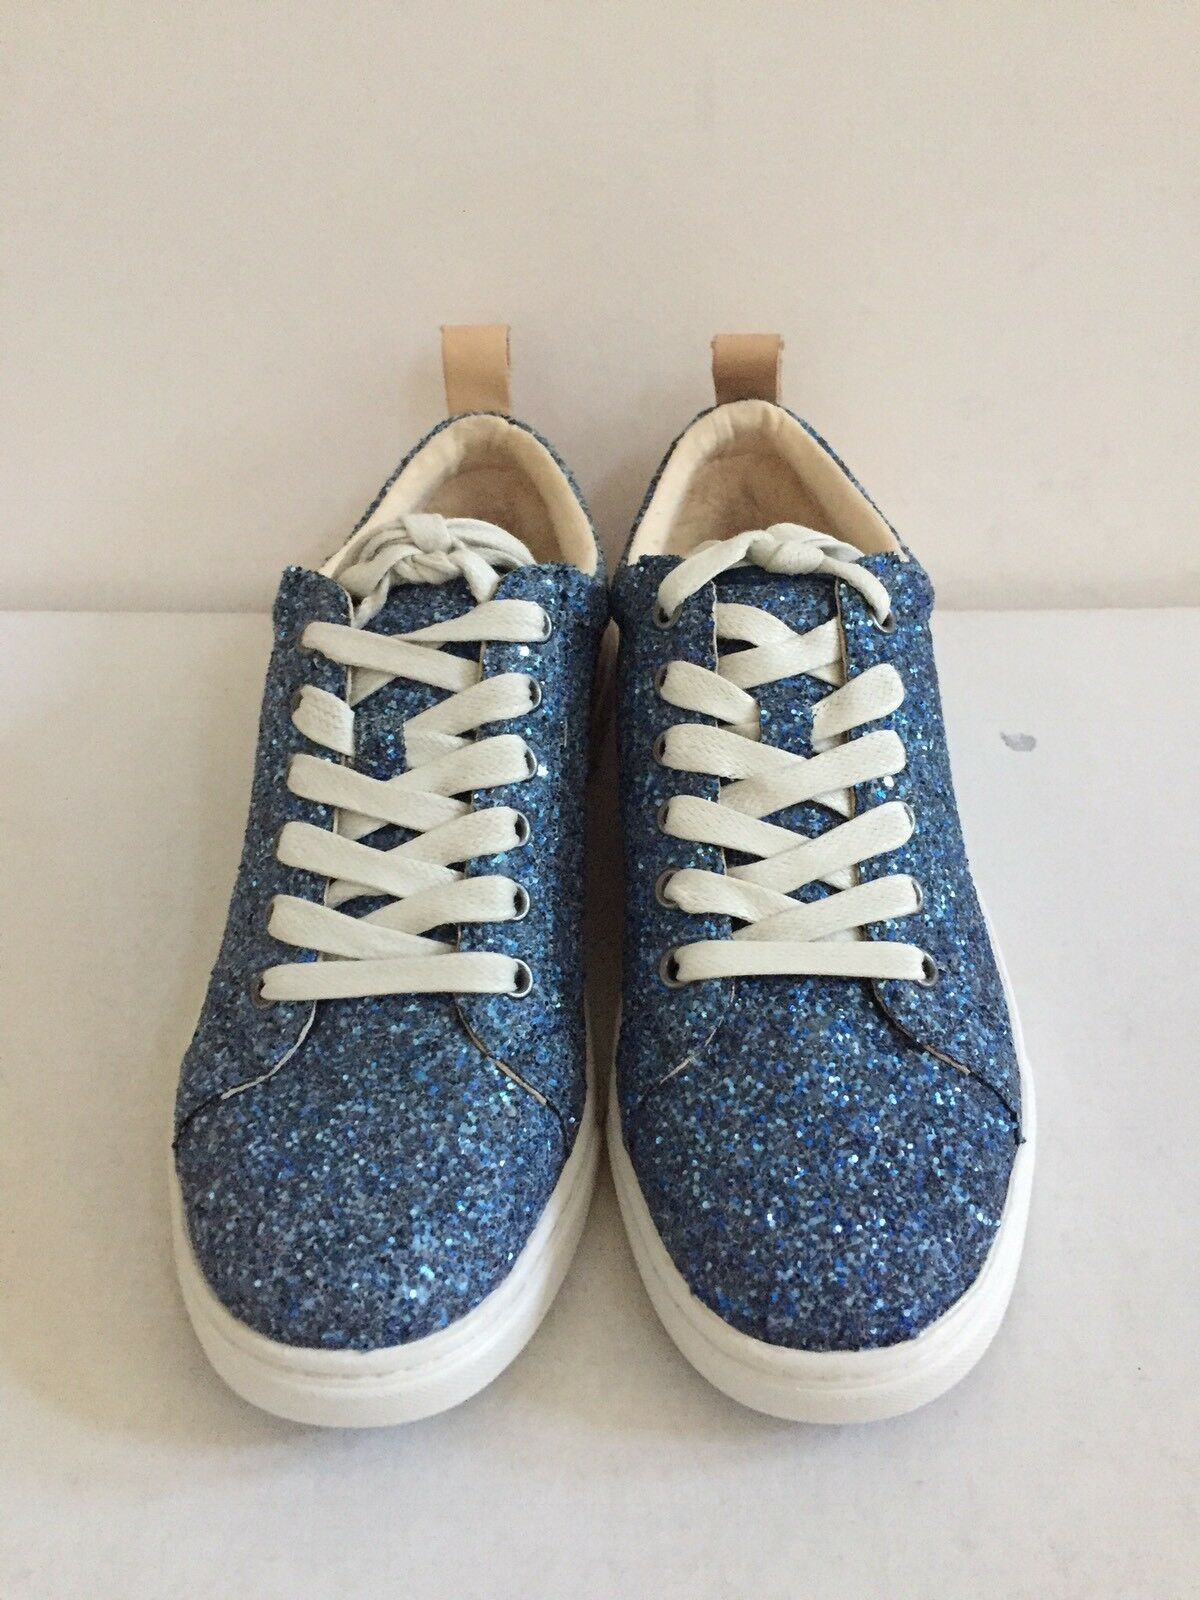 UGG KARINE CHUNKY GLITTER BLUE MULTI LACE UP SNEAKERS US 7 / EU 38 / UK 5.5 NIB image 3